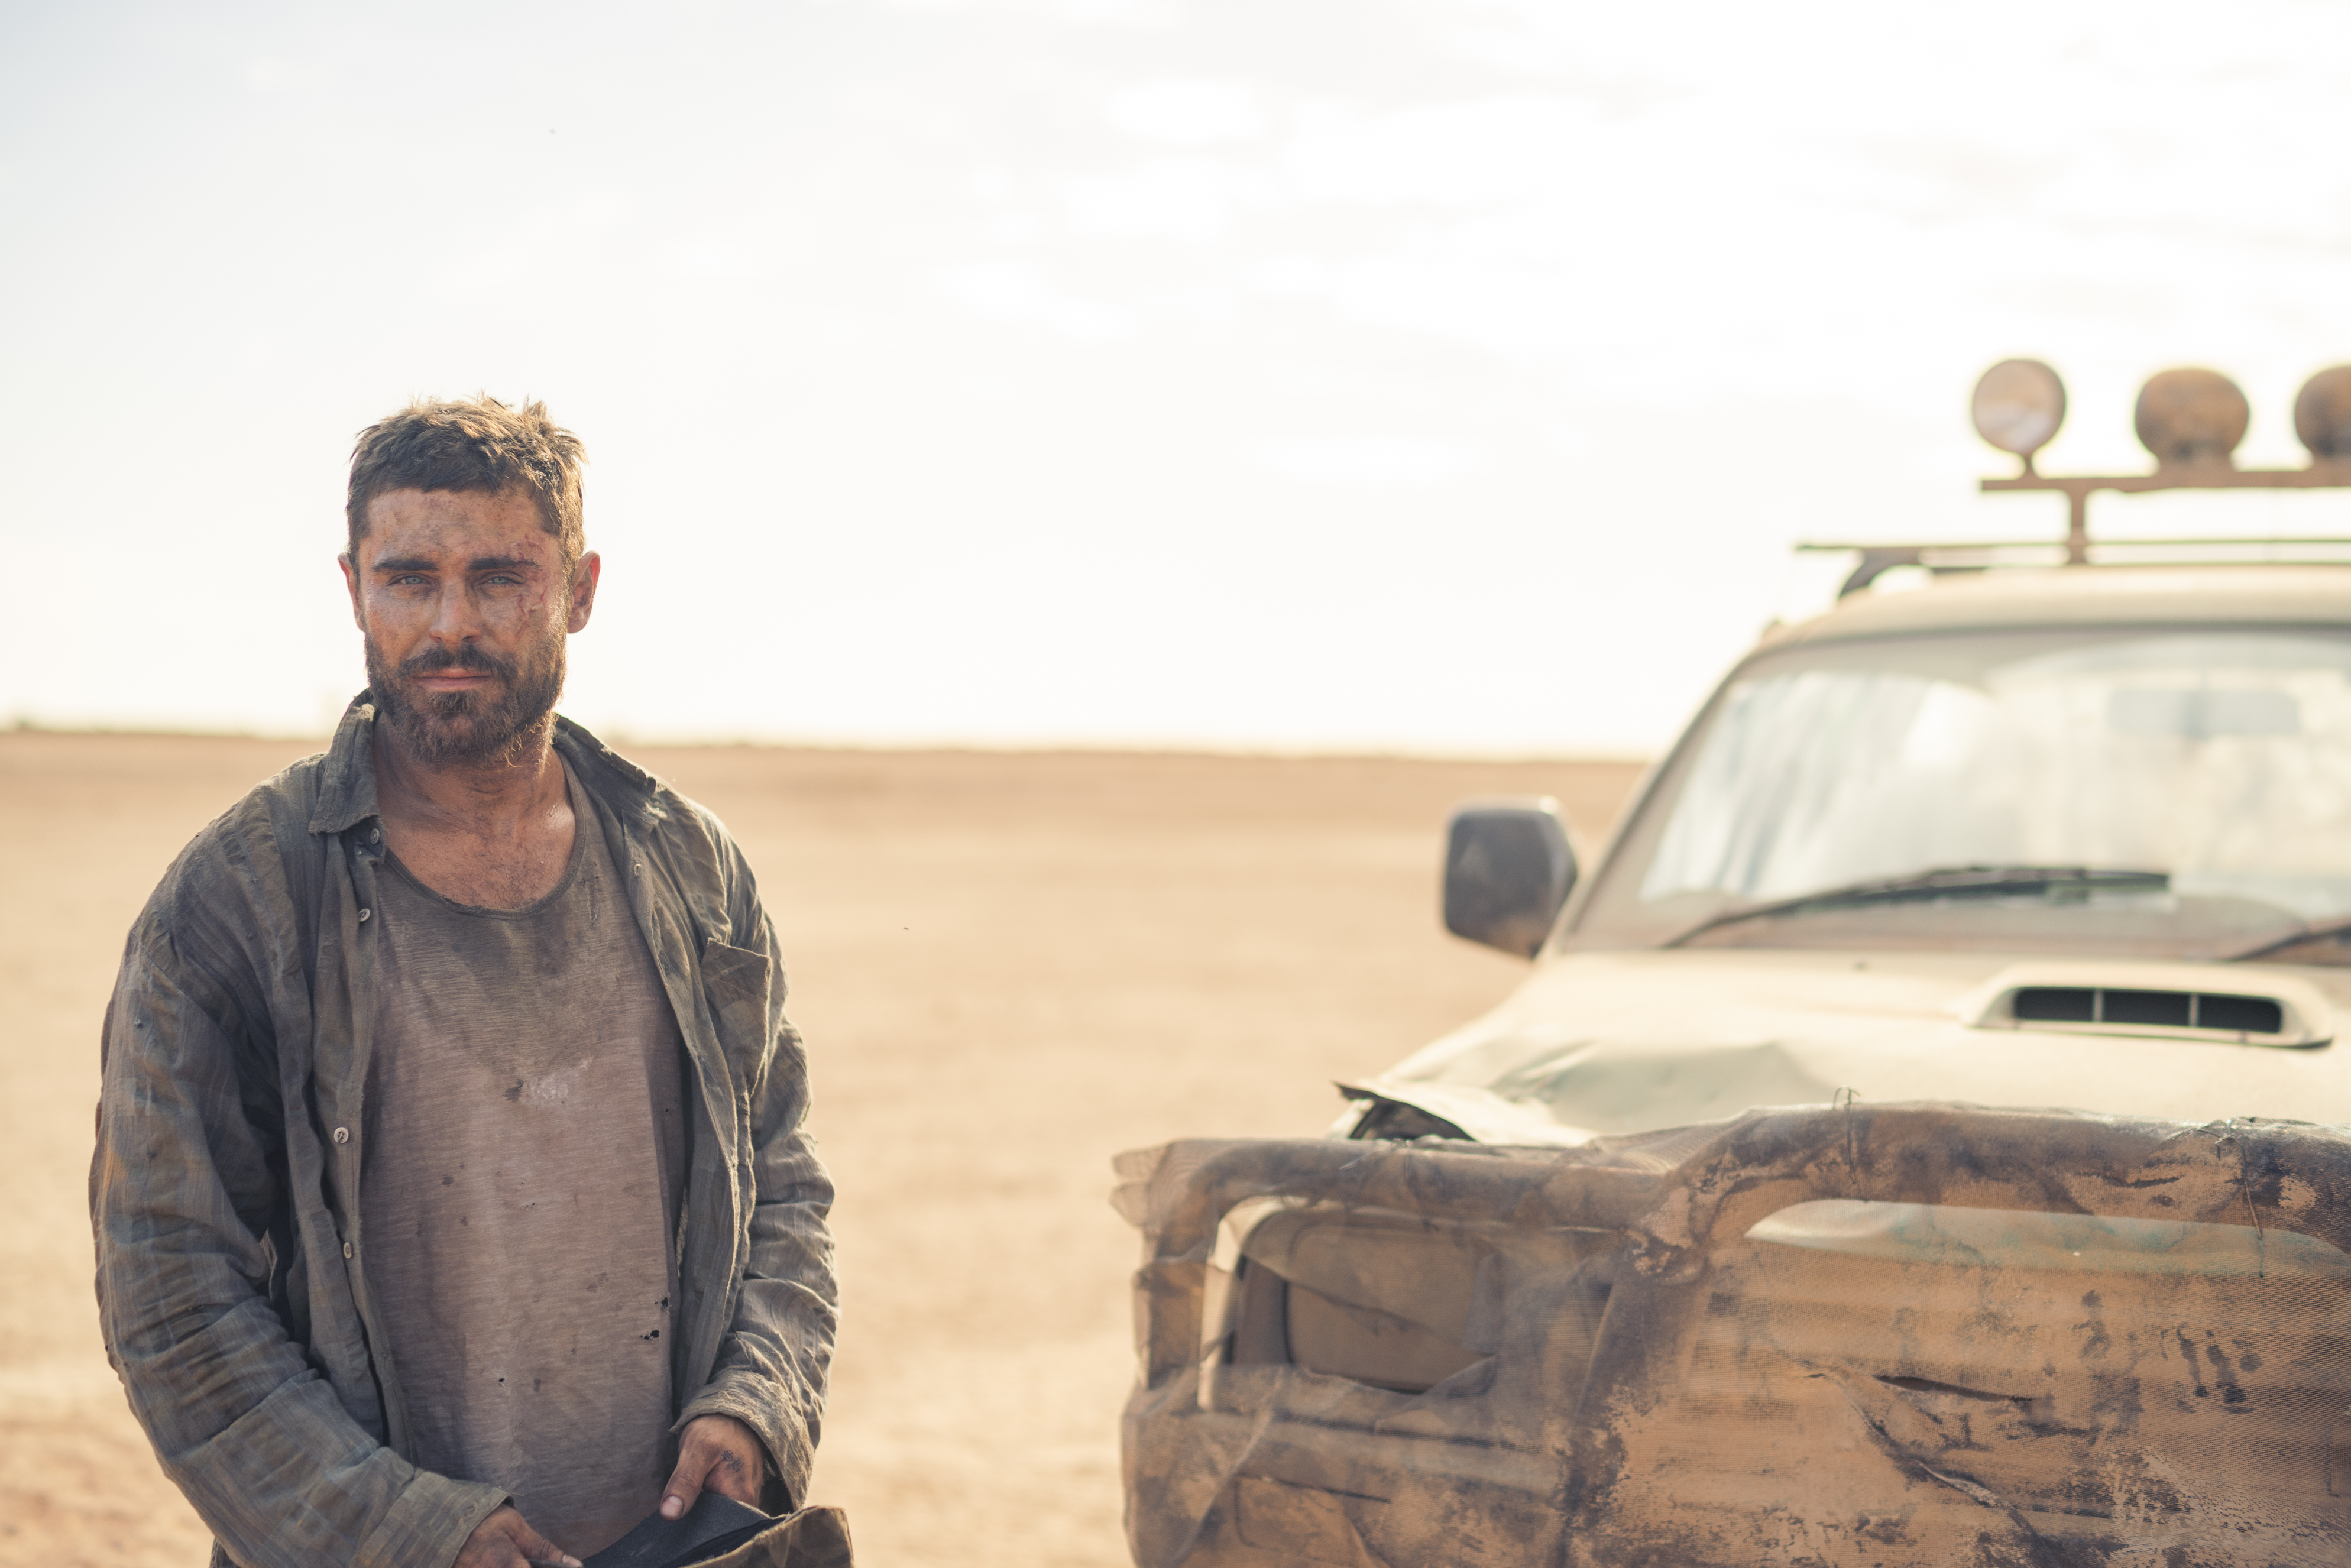 zac-efron-survival-thriller-'gold'-sells-to-screen-media-(exclusive)